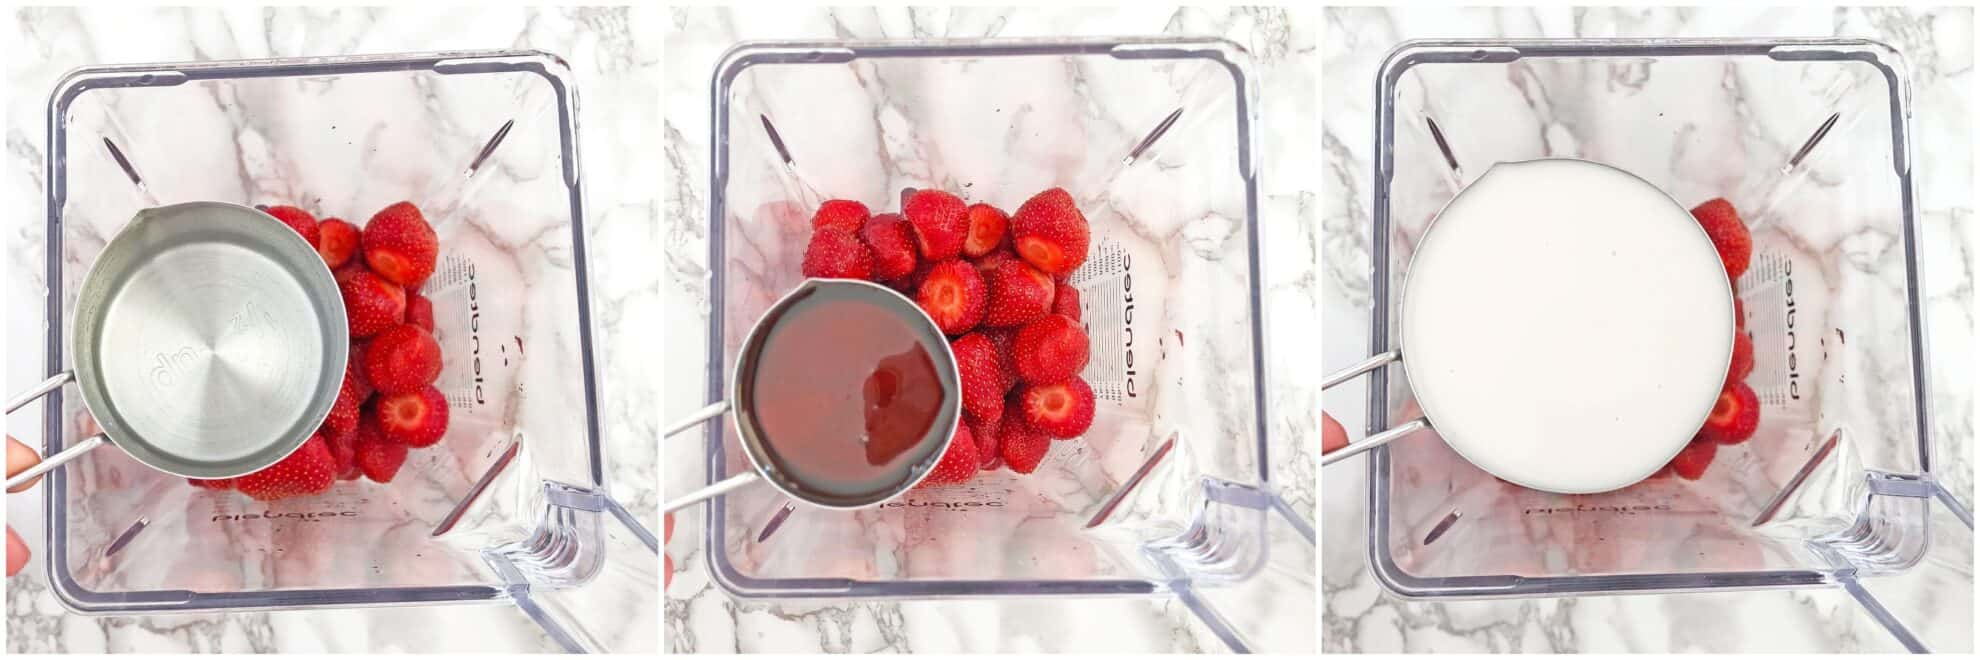 clean eating, dairy free, easy recipe, fresh strawberries, garden strawberries, gluten-free, healthy, Healthy Strawberry Popsicles Recipe, homegrown strawberries, homemade popsicles, kid-friendly, maple from Canada, organic maple syrup, popsicles, vanilla cashew milk, refined-sugar-free, vegan